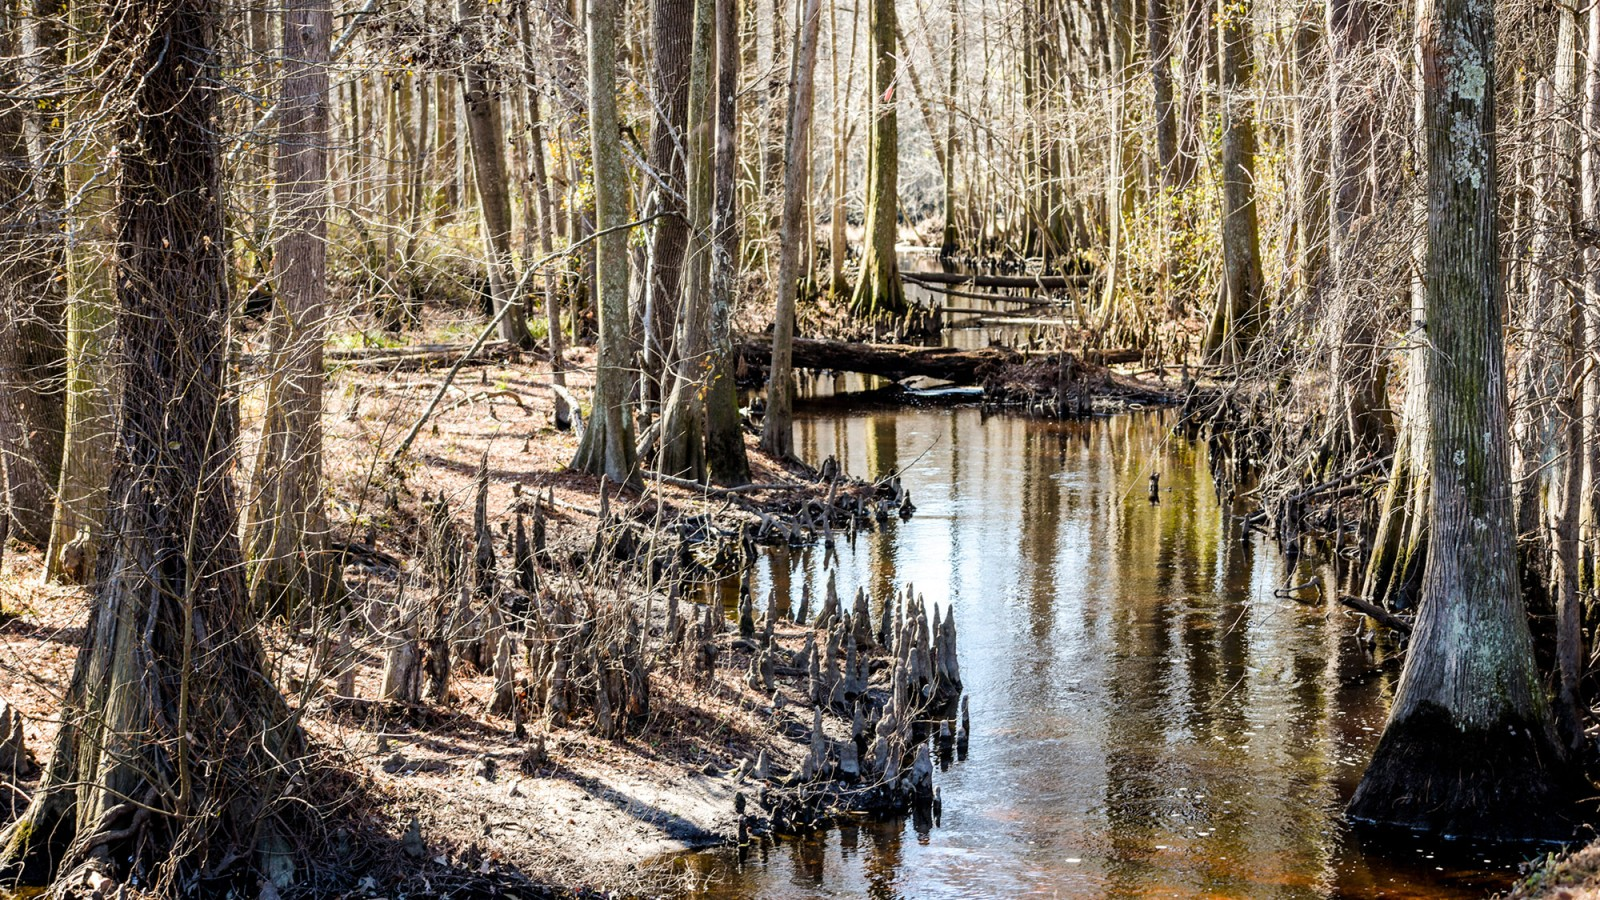 The Lumbee River